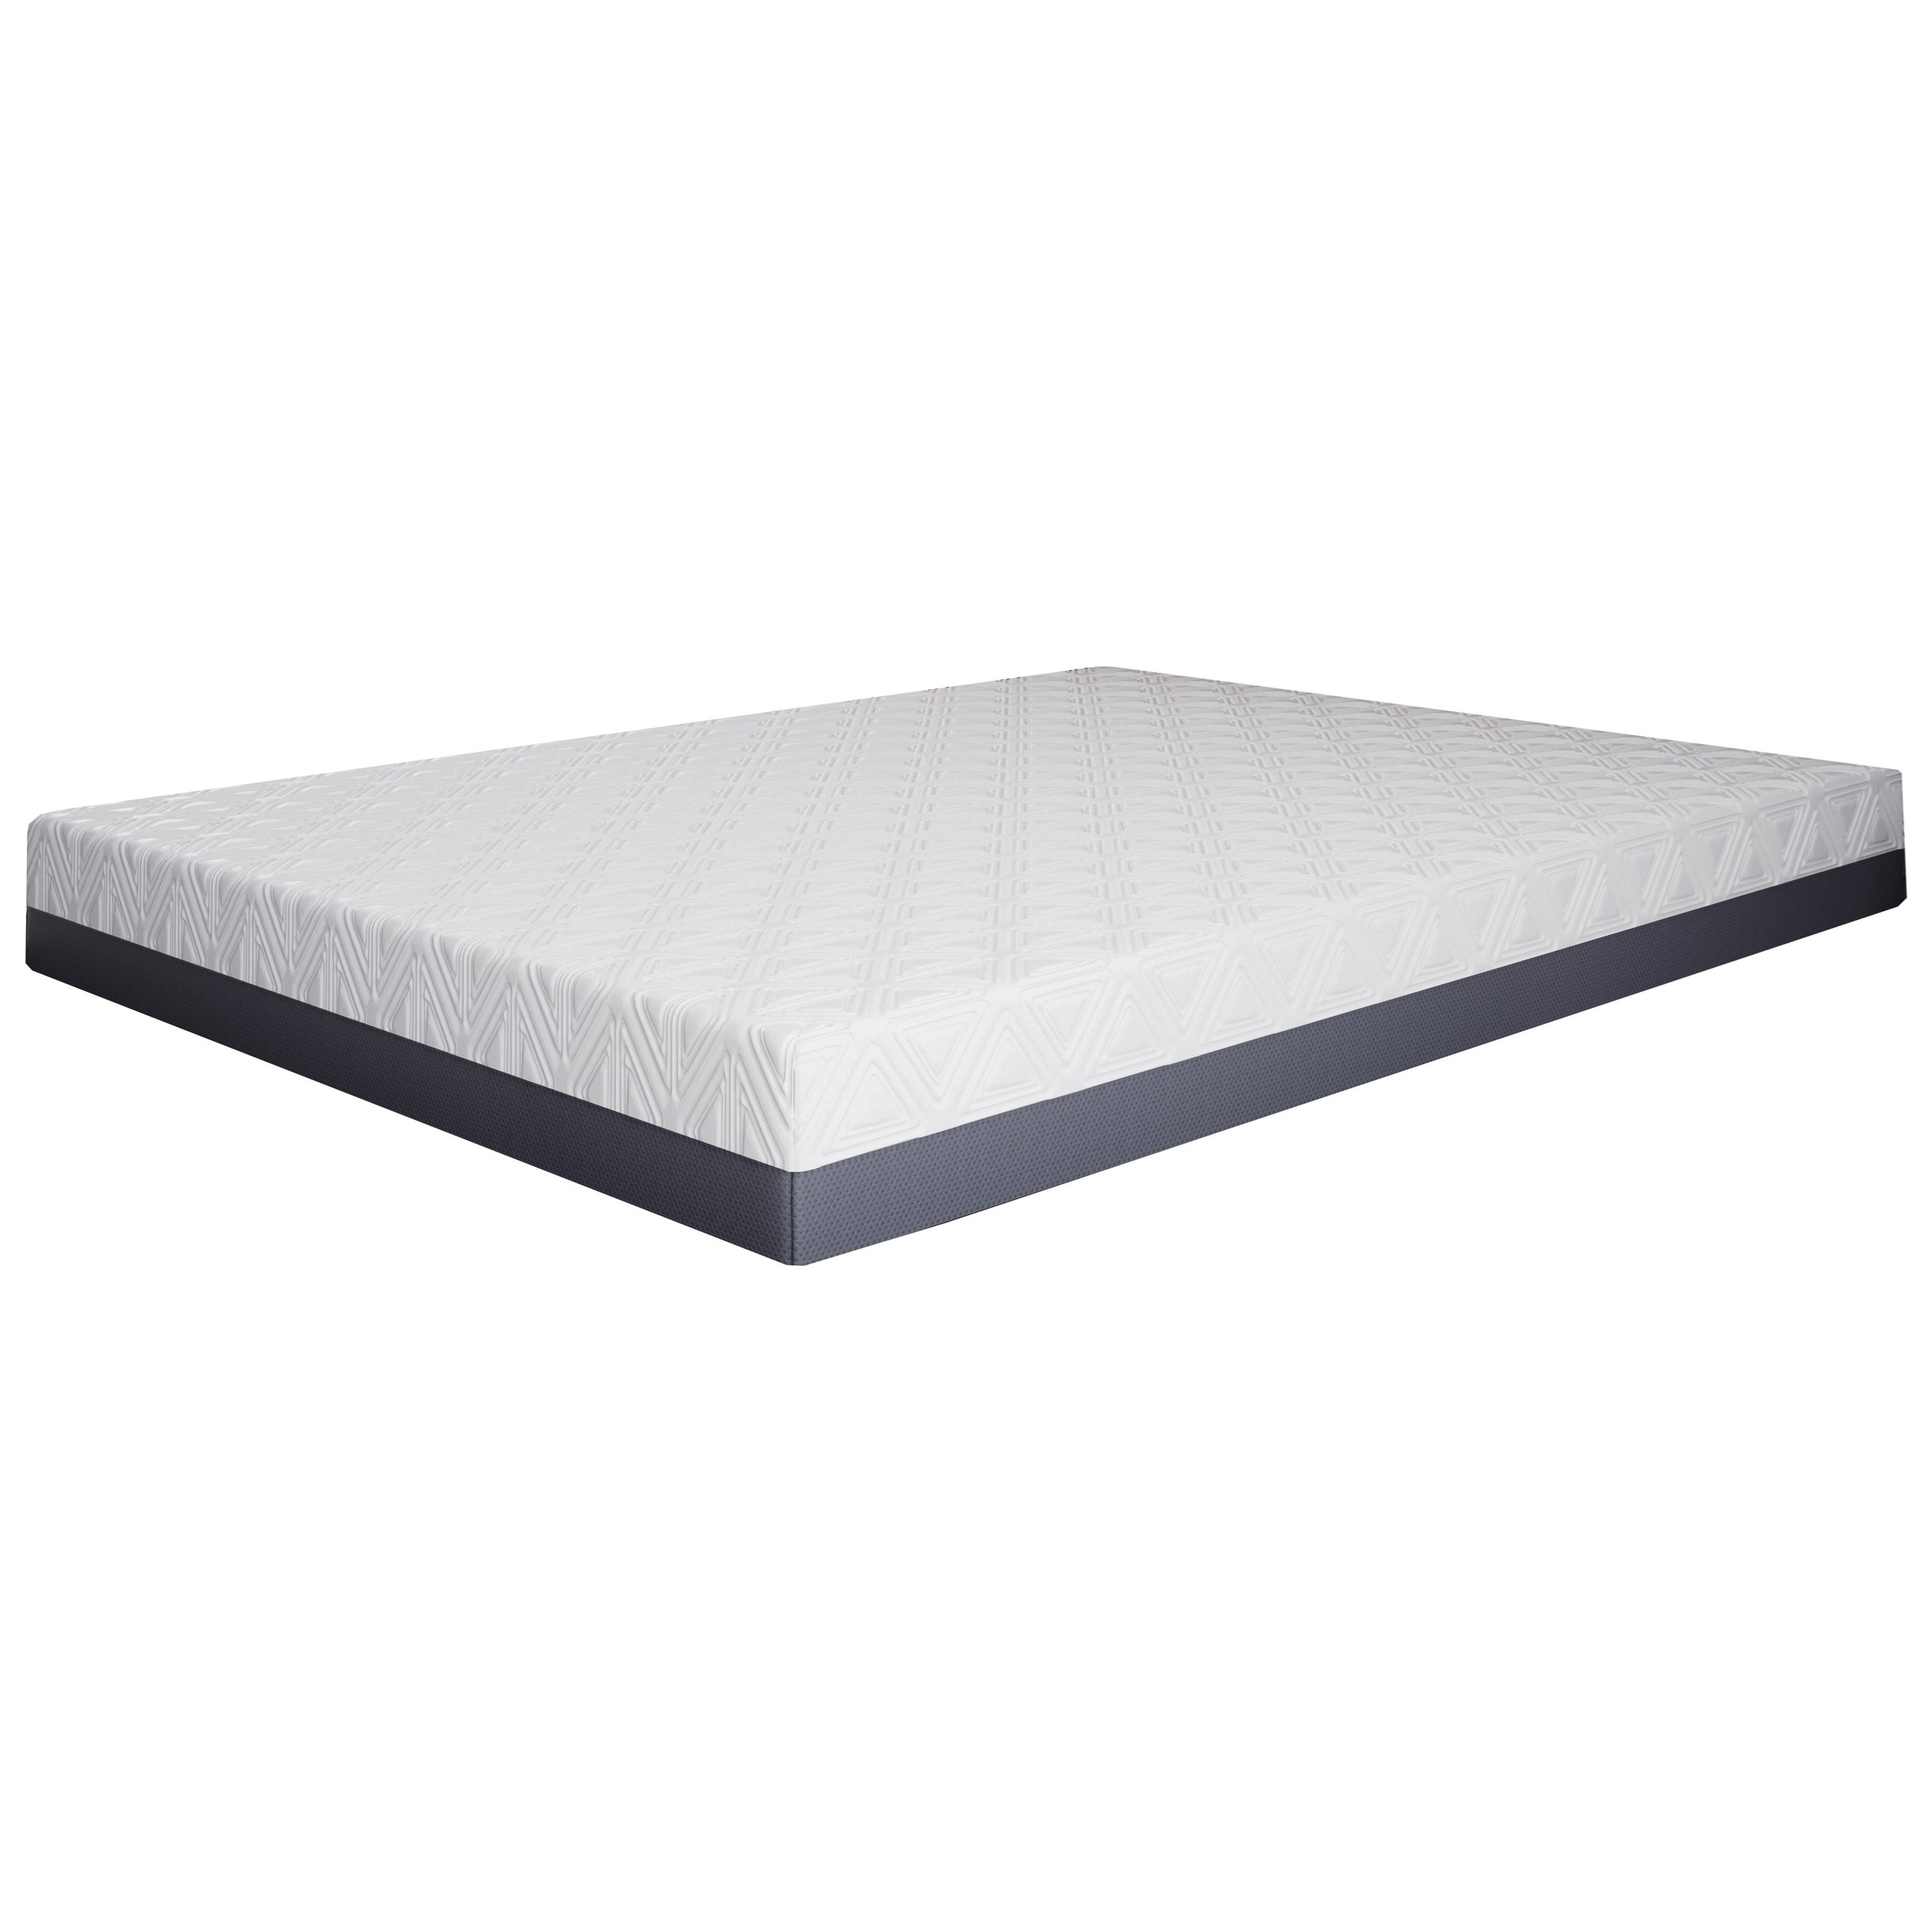 "Pur Gel Colorado 10 Twin 10"" Gel Memory Foam Mattress by BedTech at Sparks HomeStore"